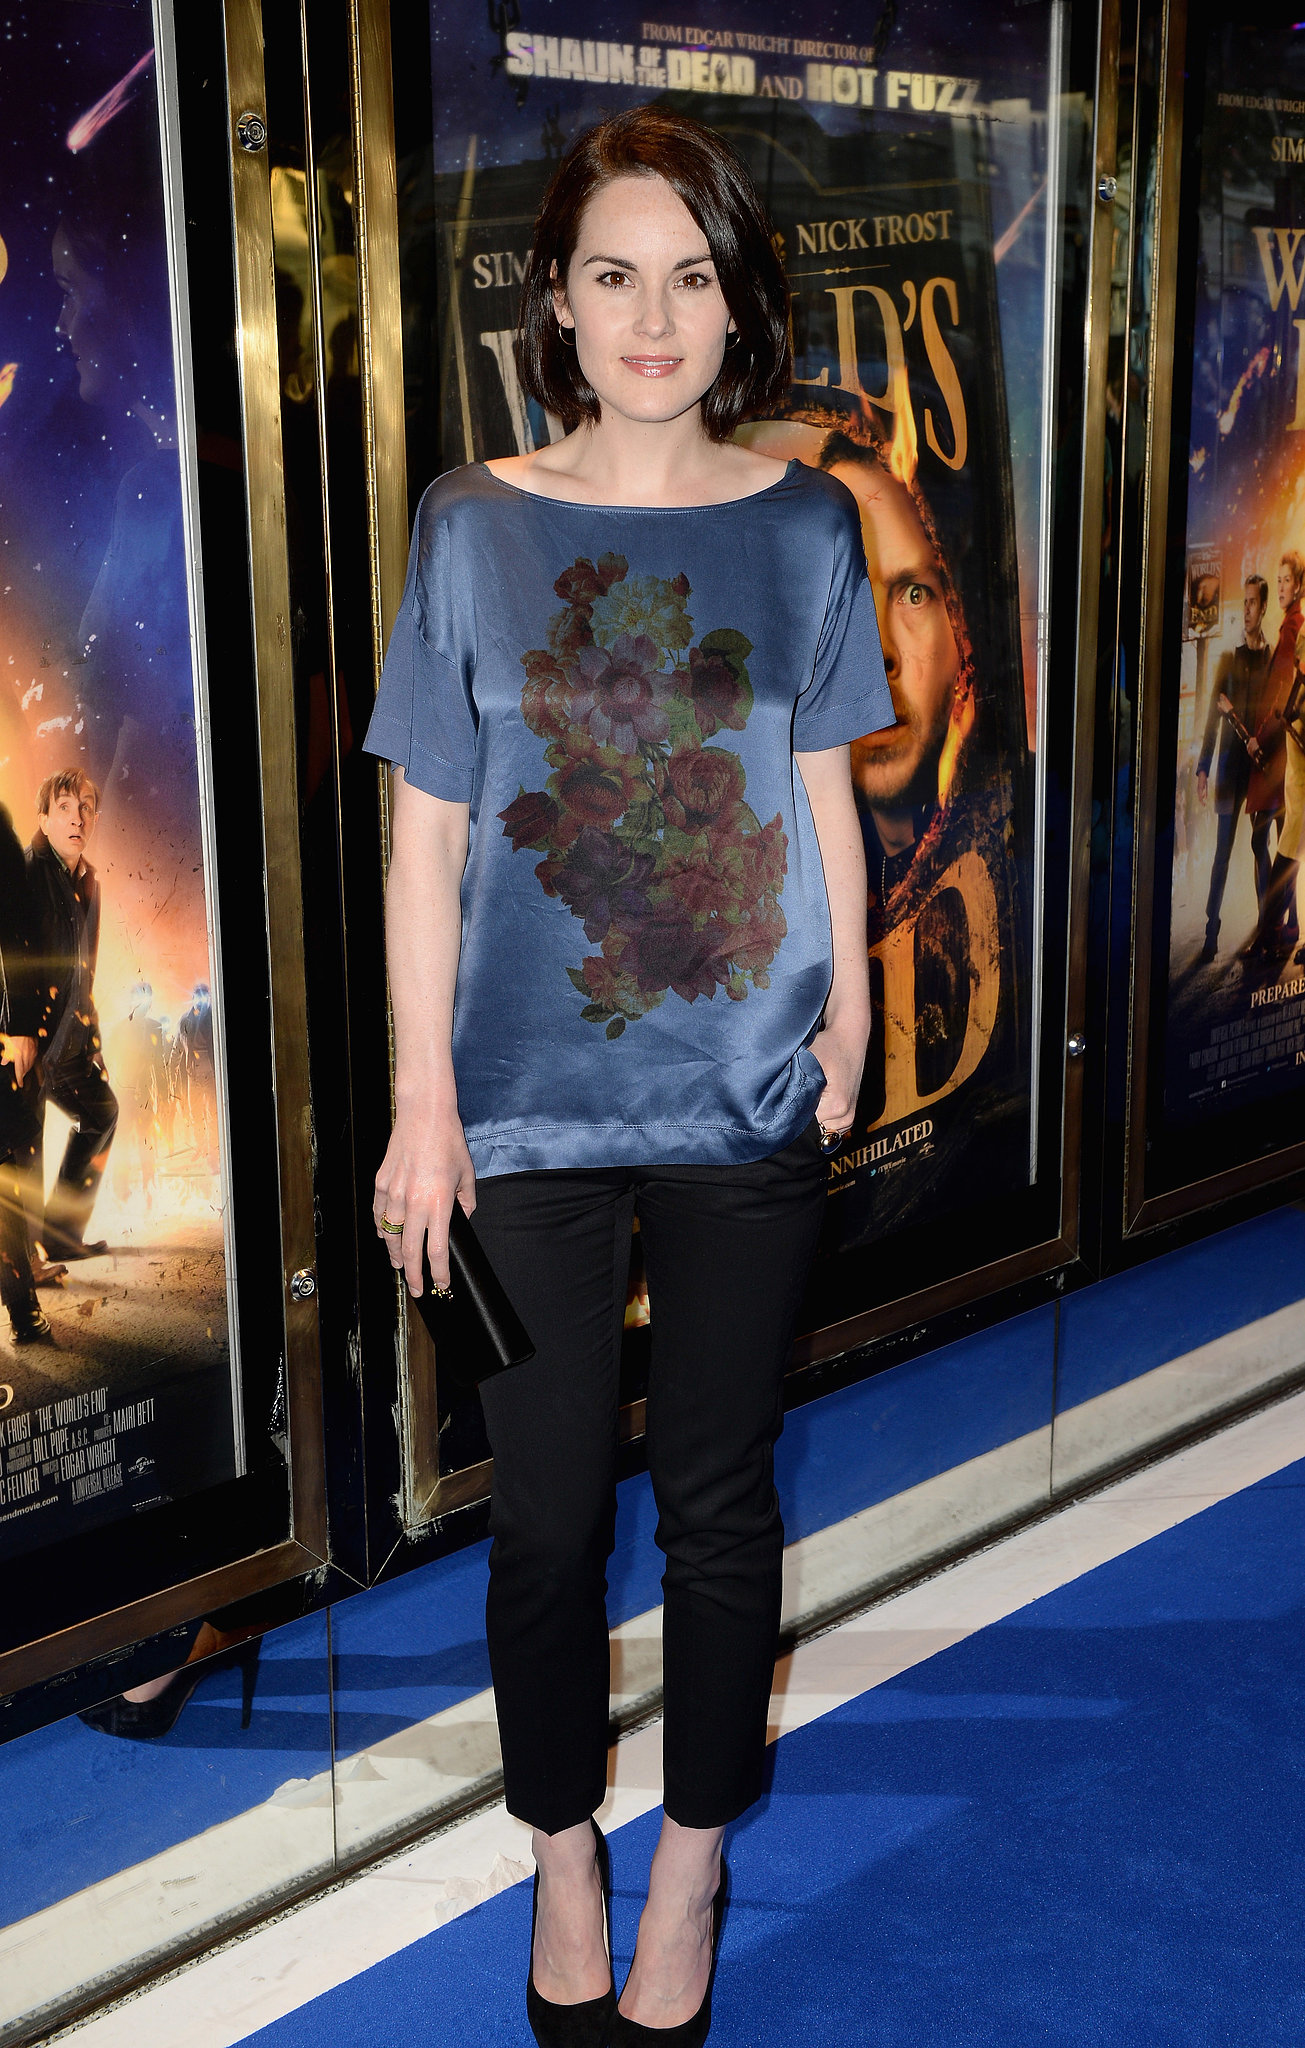 Michelle Dockery matched the carpet's hue with a blue blouse at London's The World's End premiere.